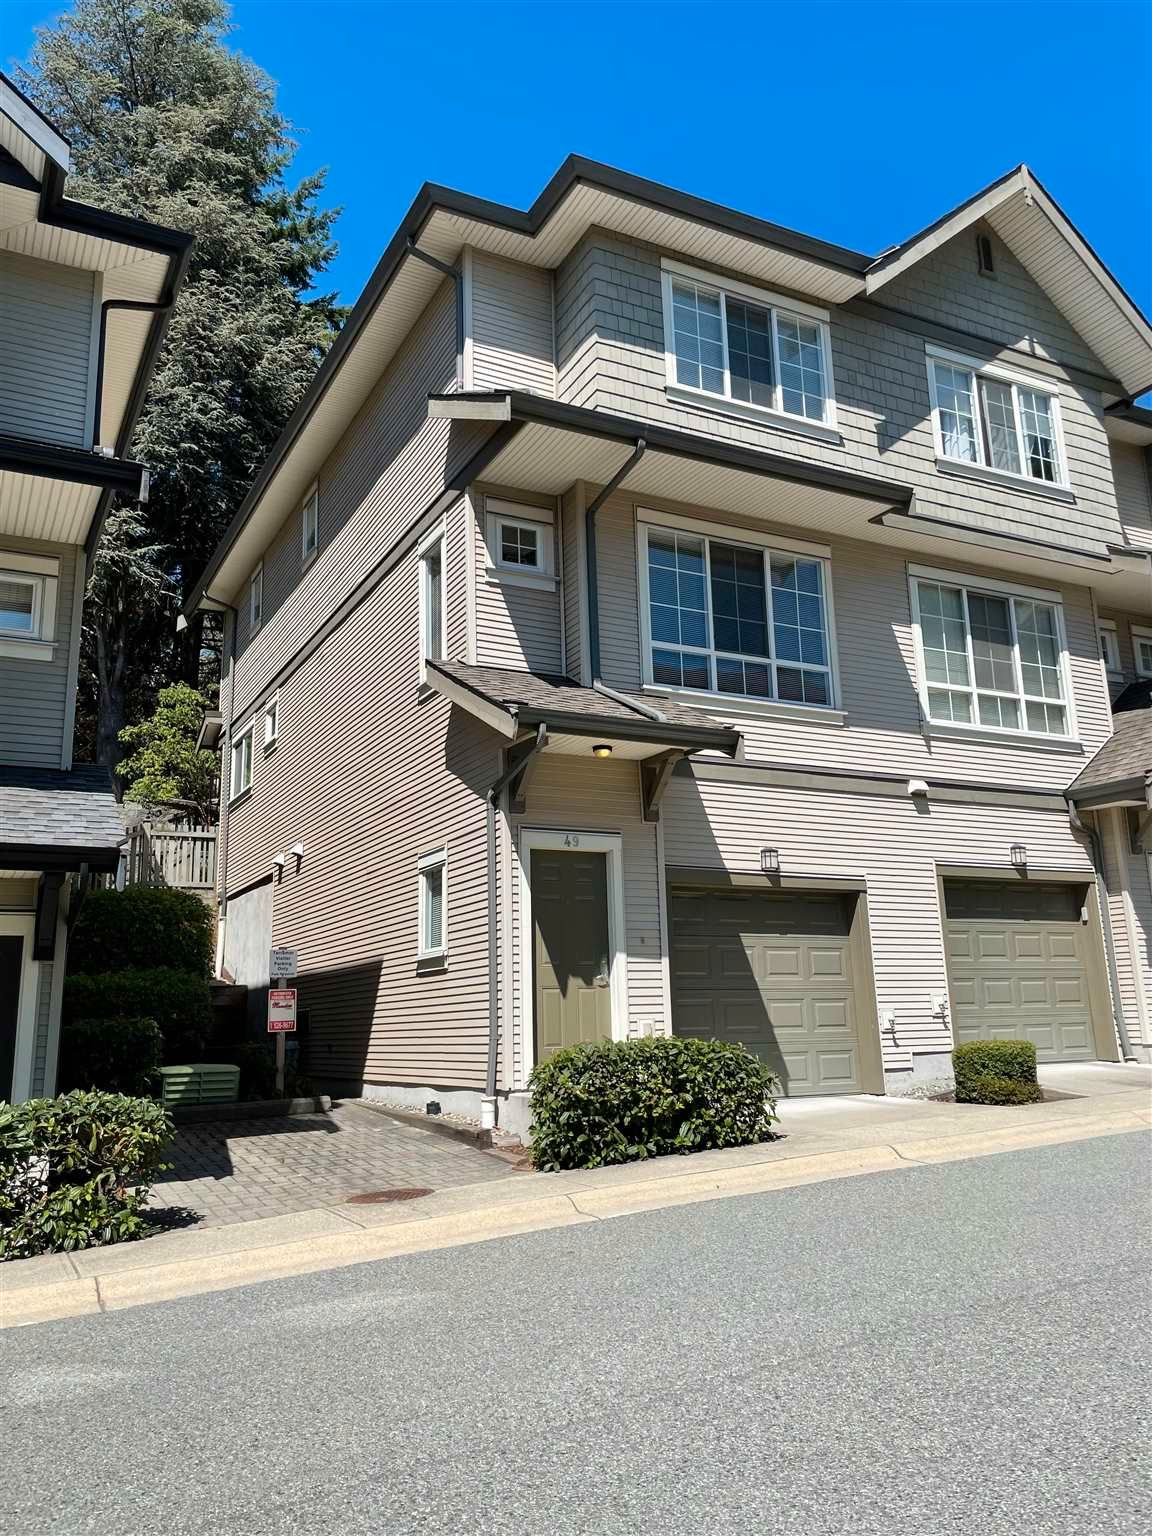 Main Photo: 49 9088 HALSTON Court in Burnaby: Government Road Townhouse for sale (Burnaby North)  : MLS®# R2601494